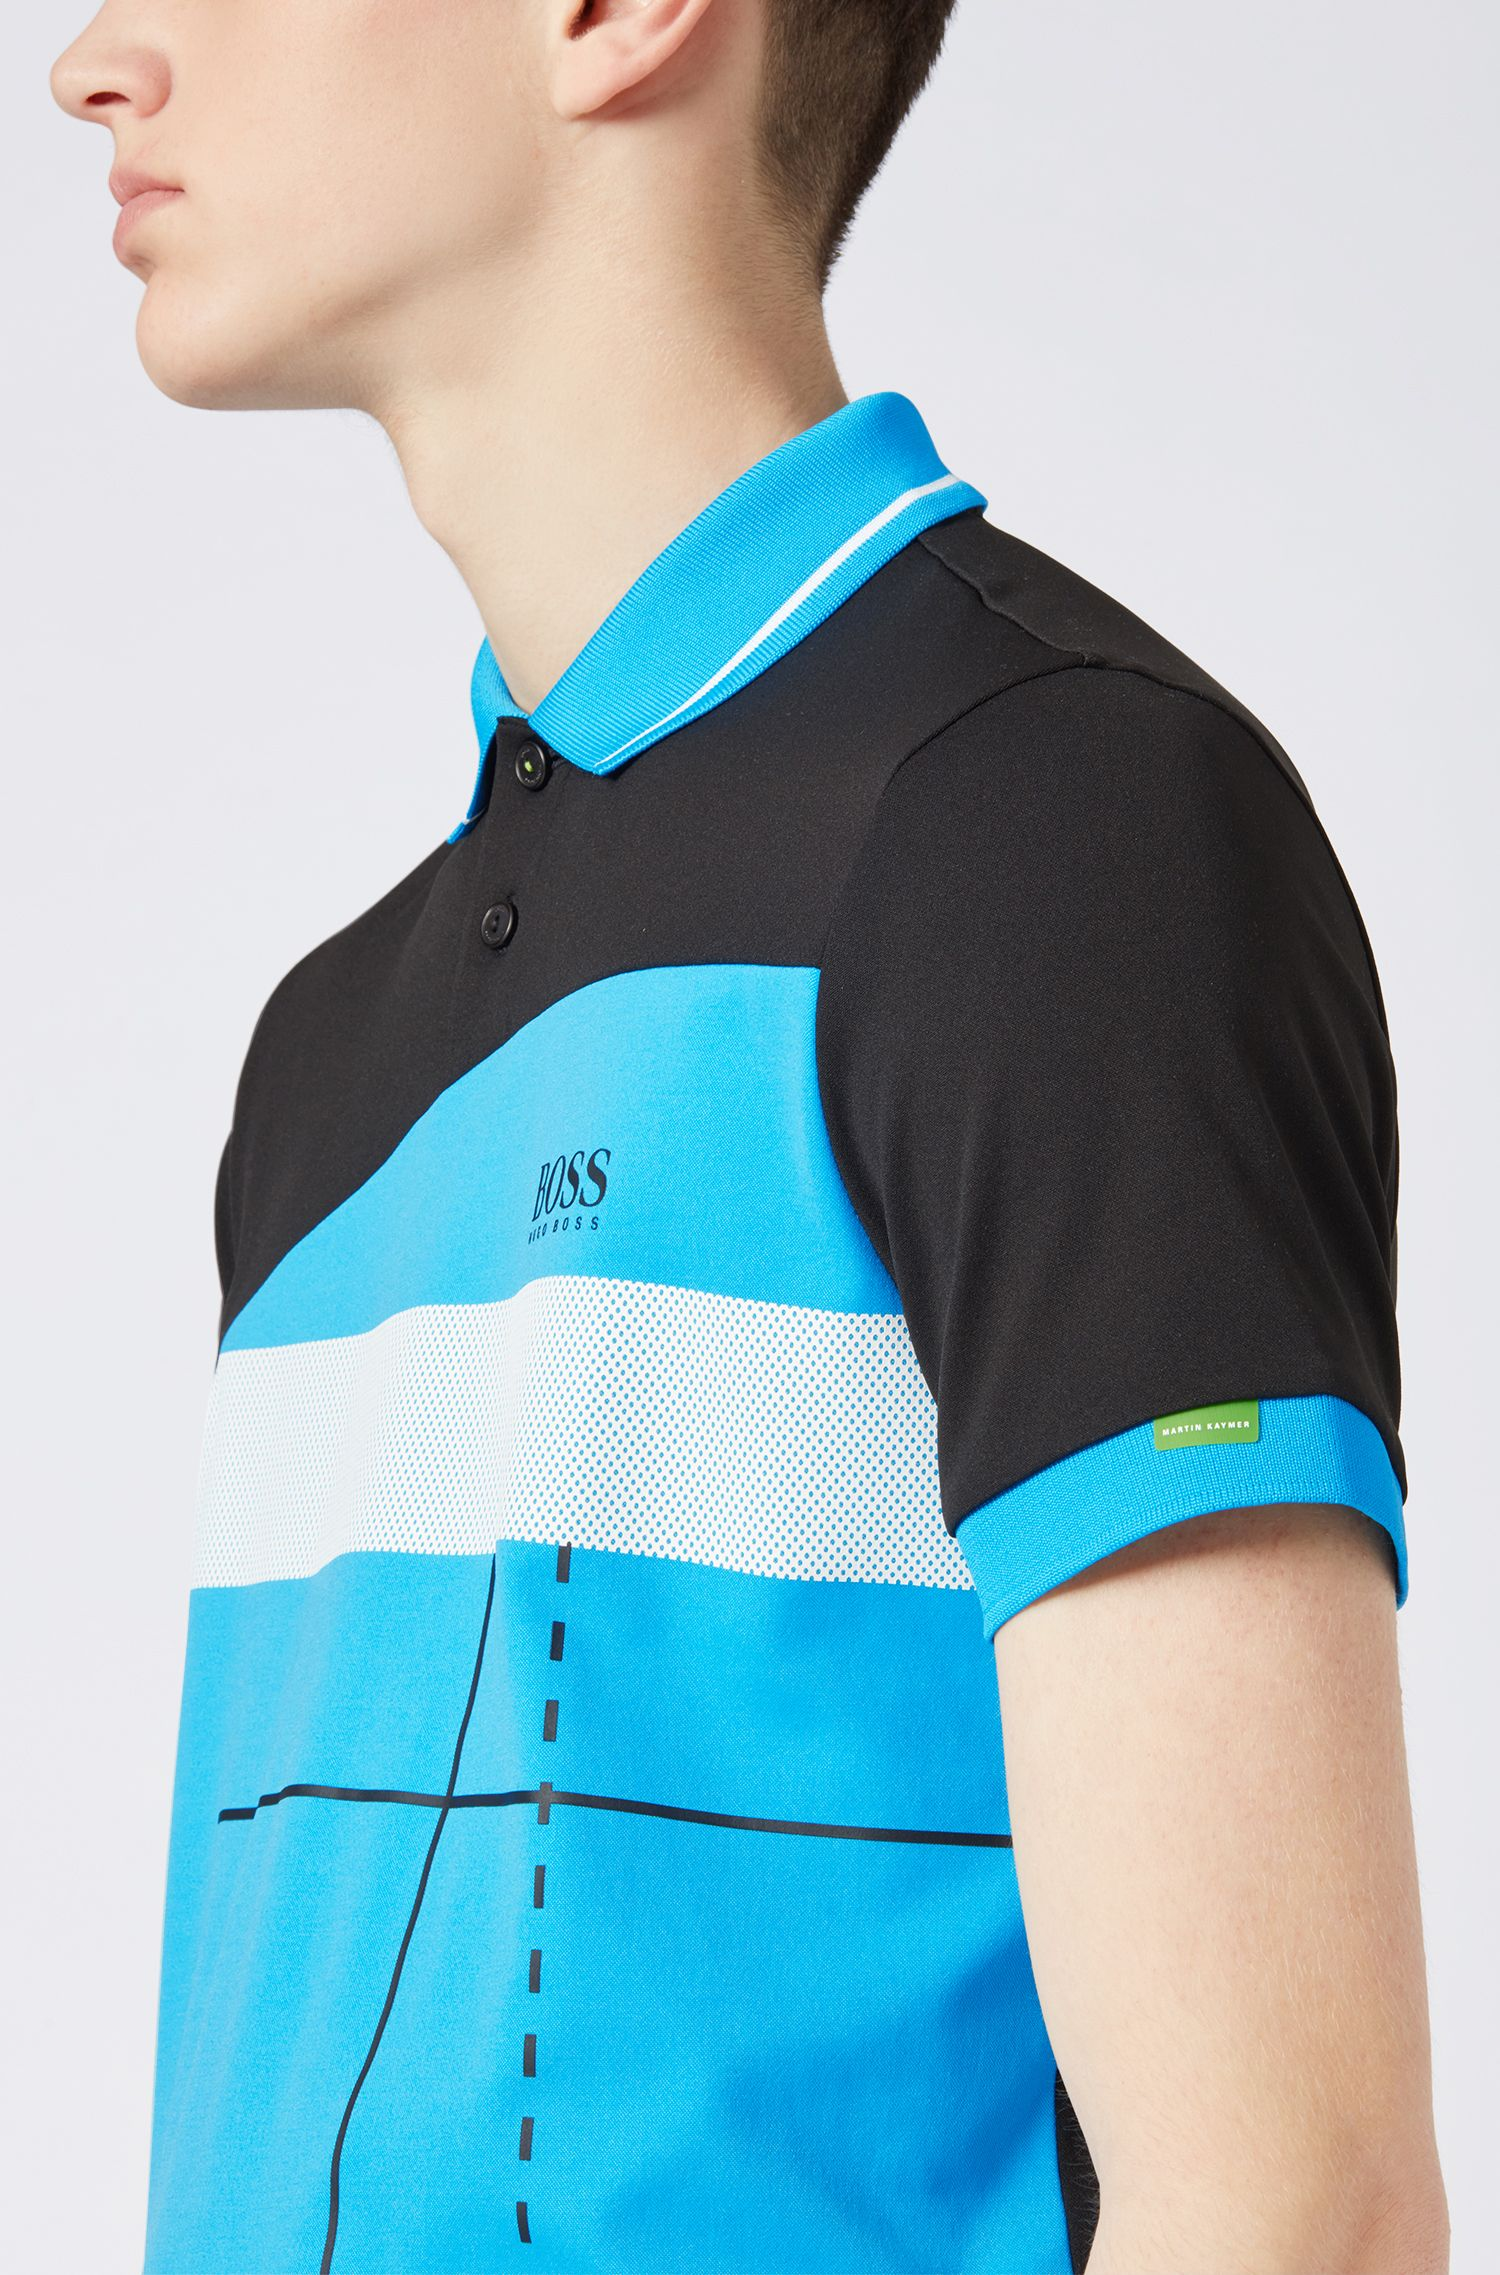 Martin Kaymer regular-fit polo shirt with dynamic artwork, Black